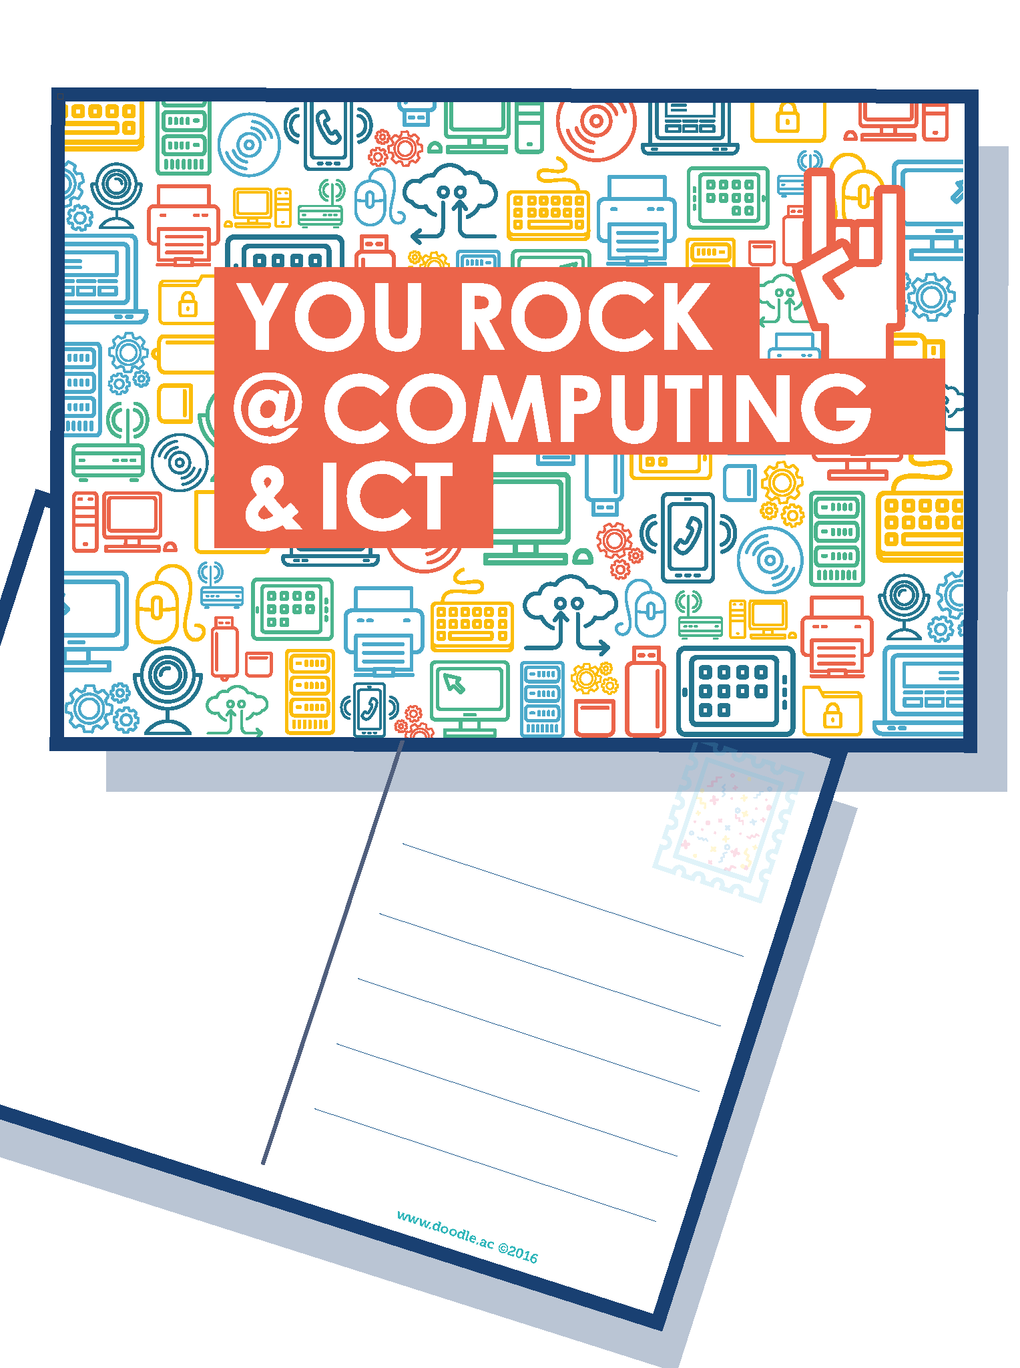 You rock at computing & ICT